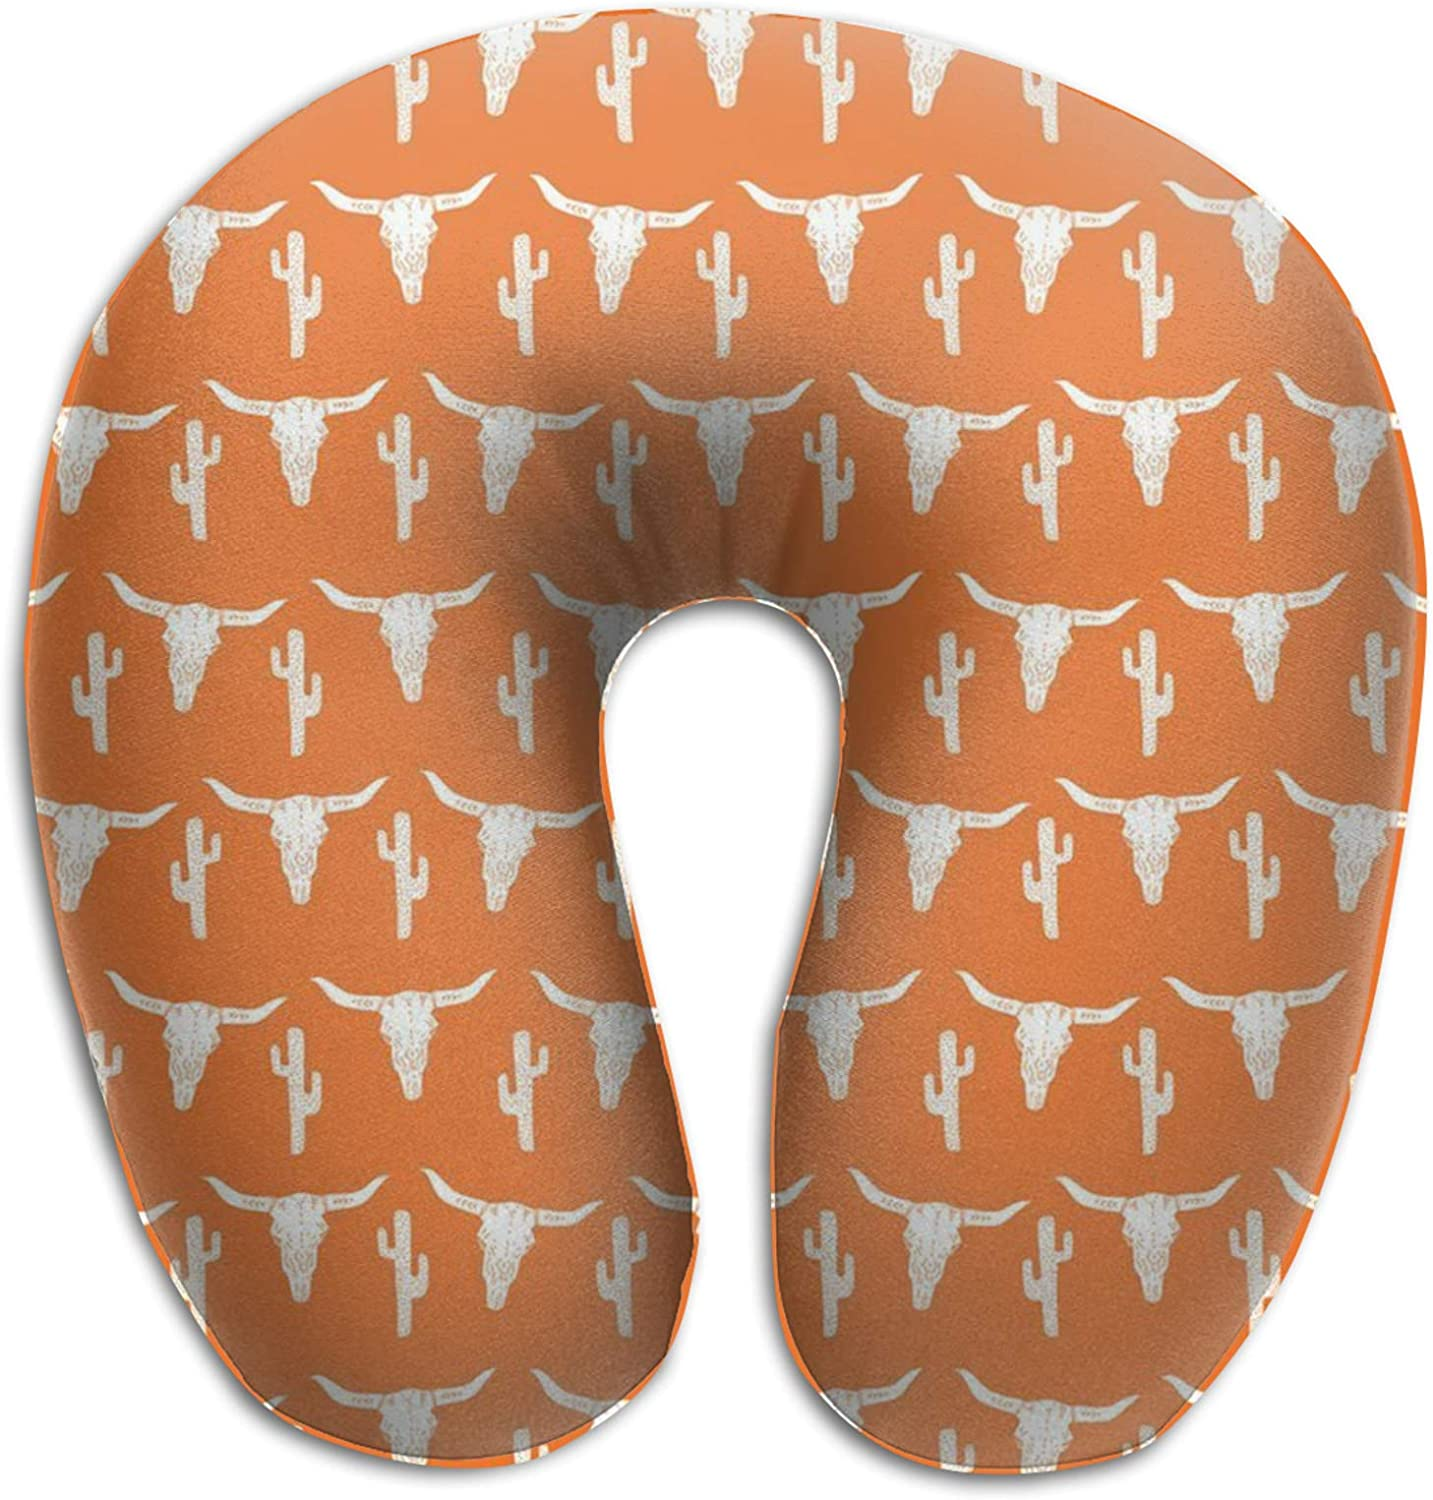 NiYoung Memory Foam Travel Pillow, Longhorn Cattle Cow Texas Skull Cactus U Shaped Pillow Breathable Comfortable Neck Pillow for Airplane, Car, Train, Bus and Home Use